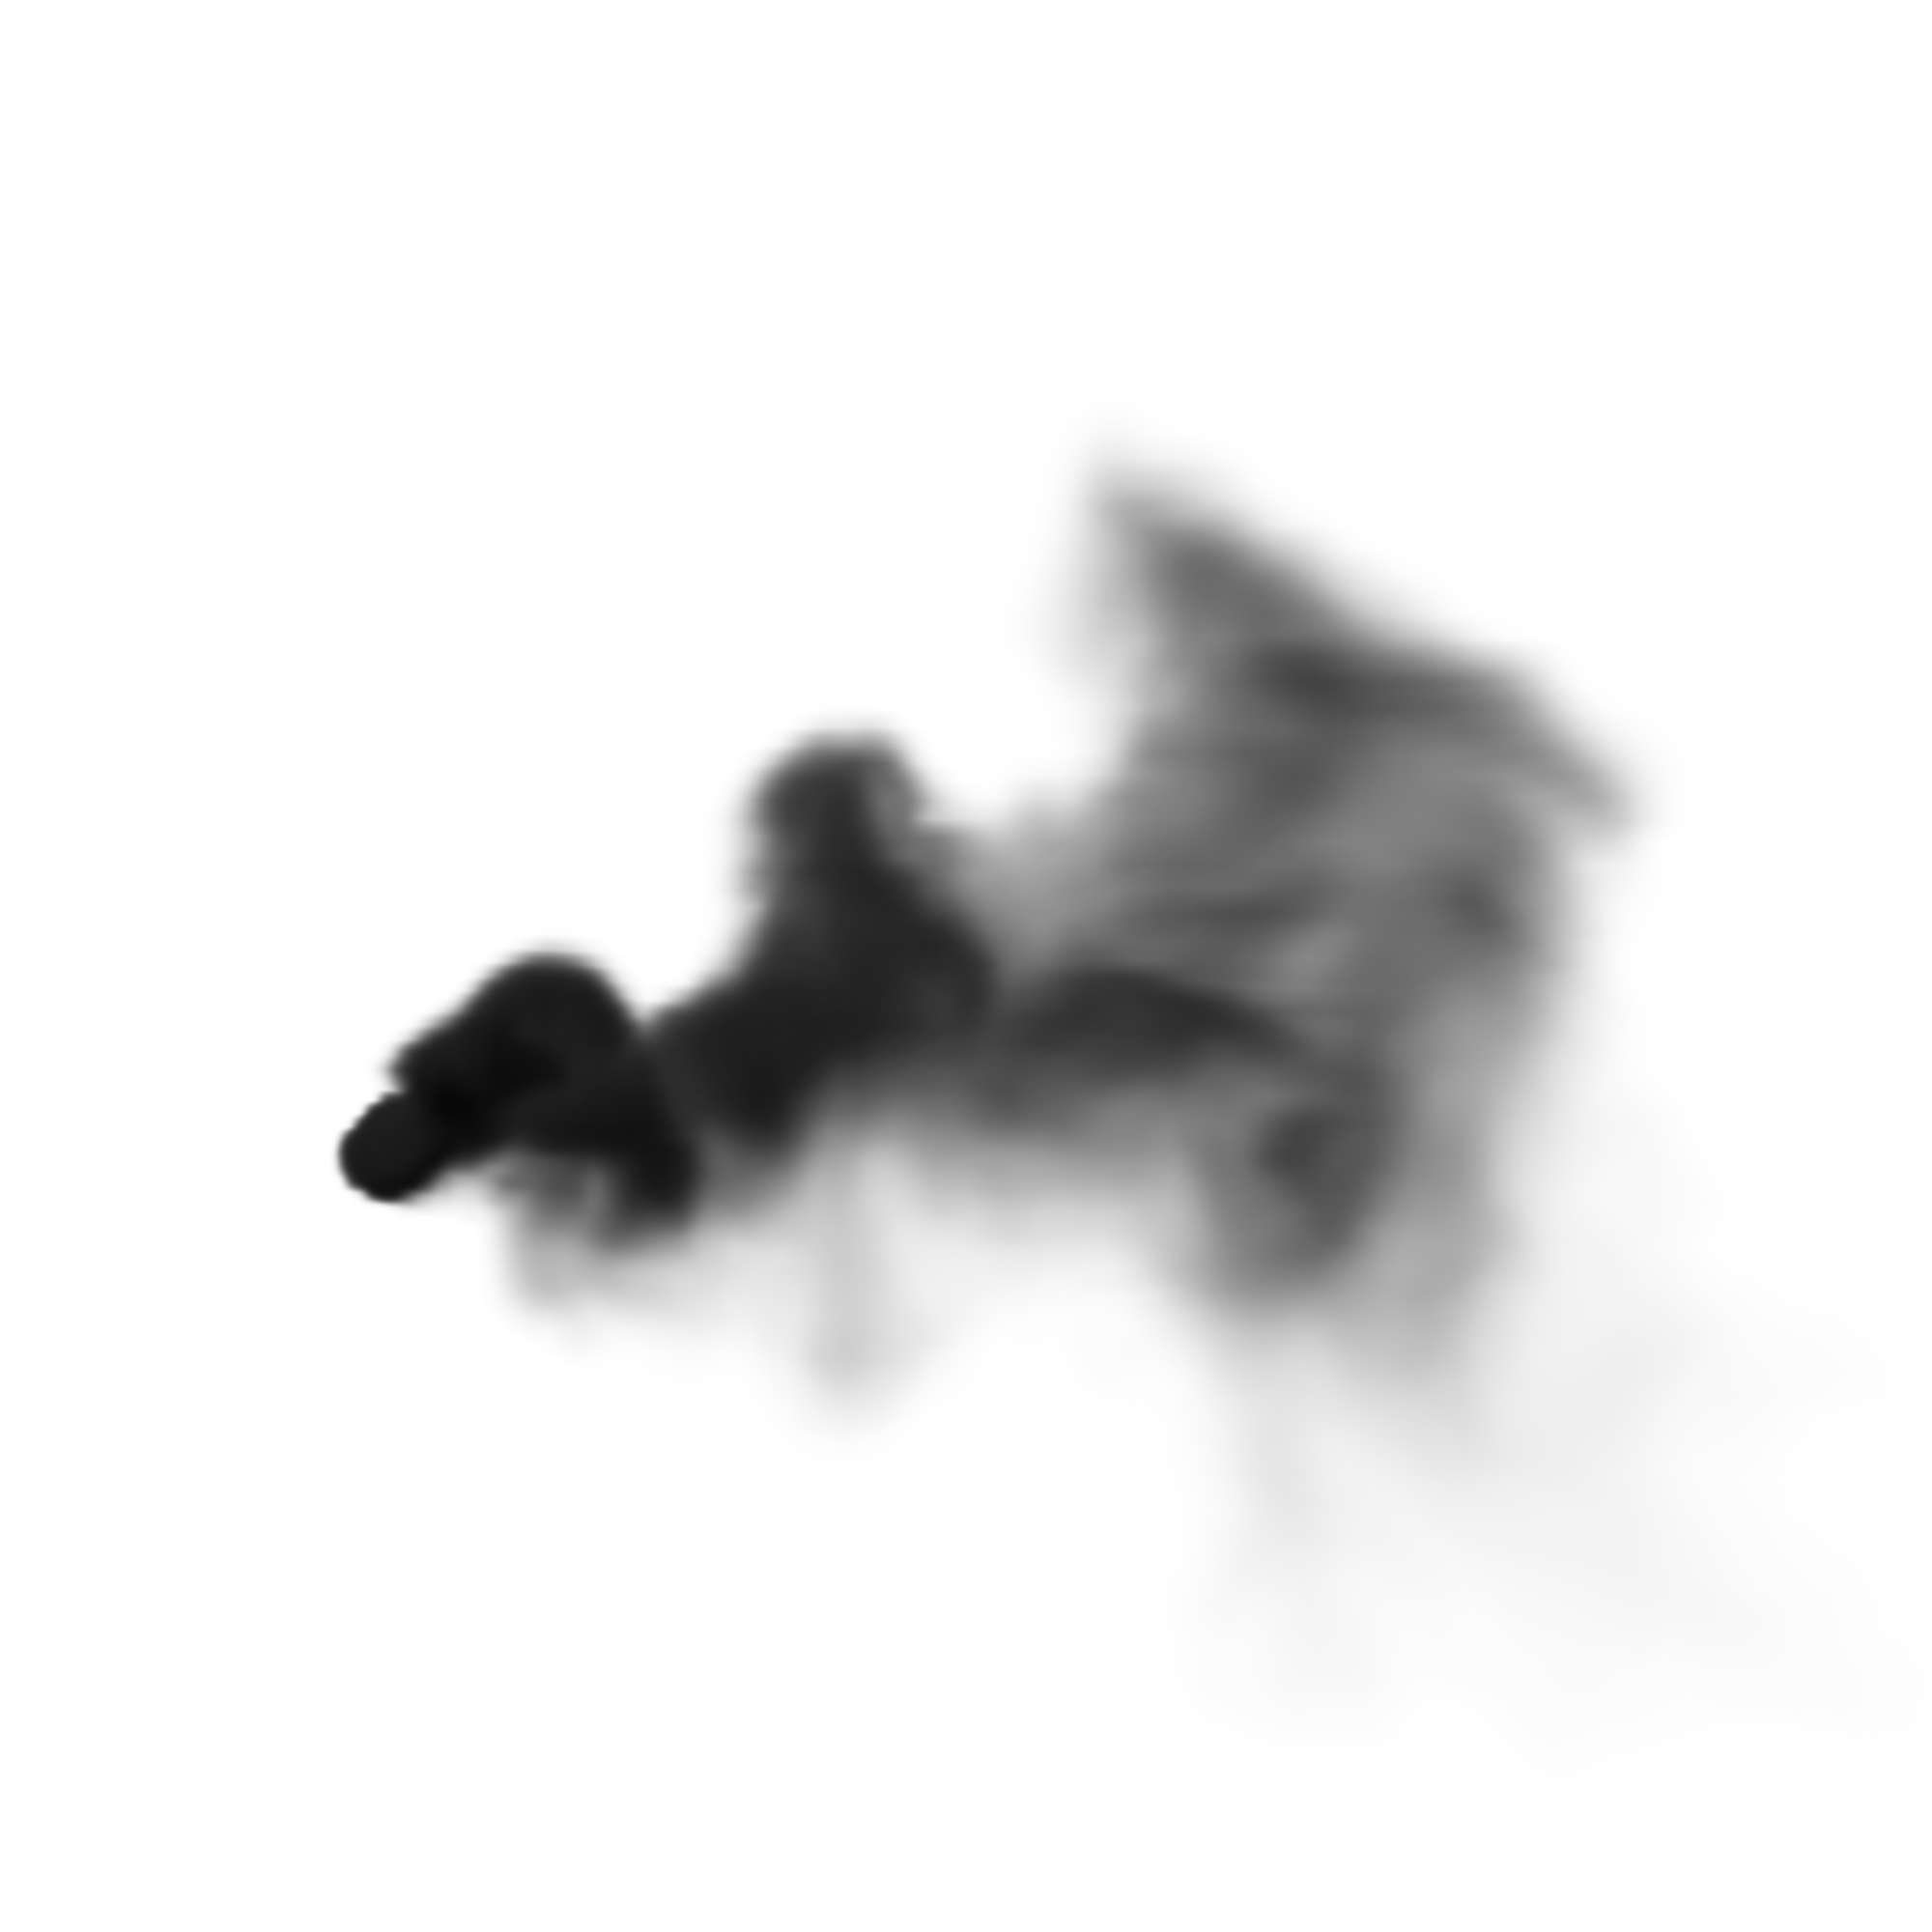 Smoke Effect PNG - 2325